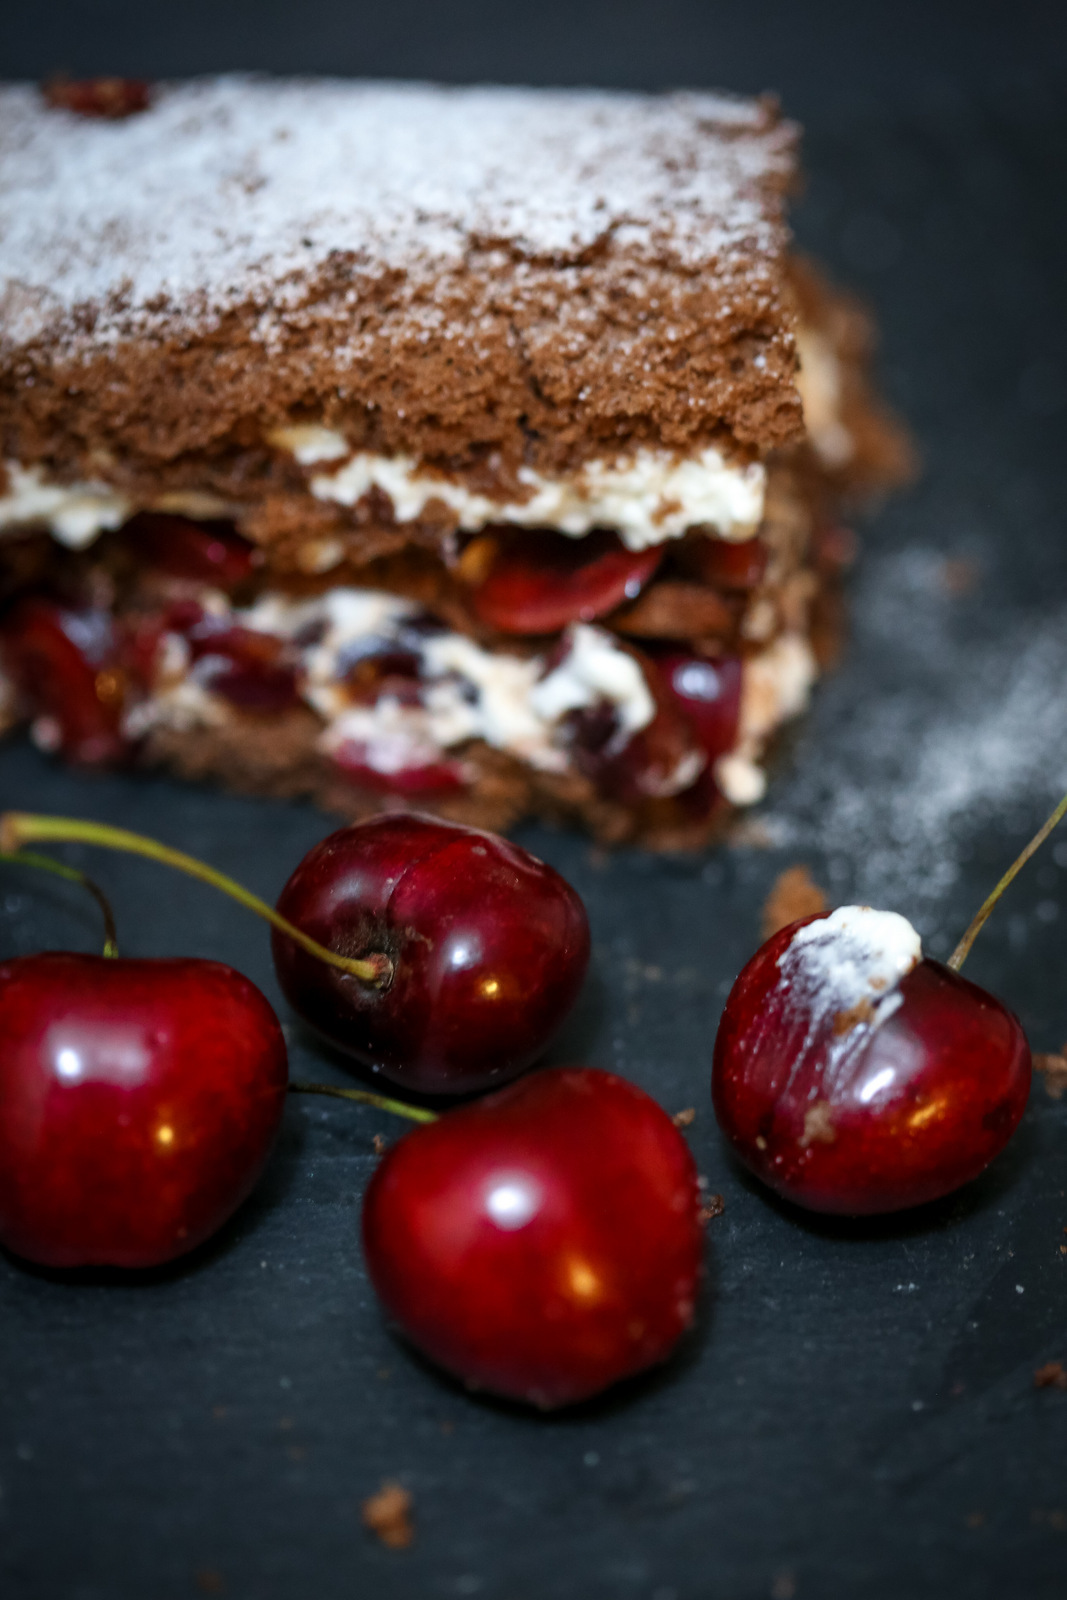 cherrypicking, chocolate cake, california, cherrypicking bay area, sponge cakes, rum cake, how to make swiss rolls, fruits, baking, easy cake recipes, food photography, food blogging, brentwood farms, nun better farms